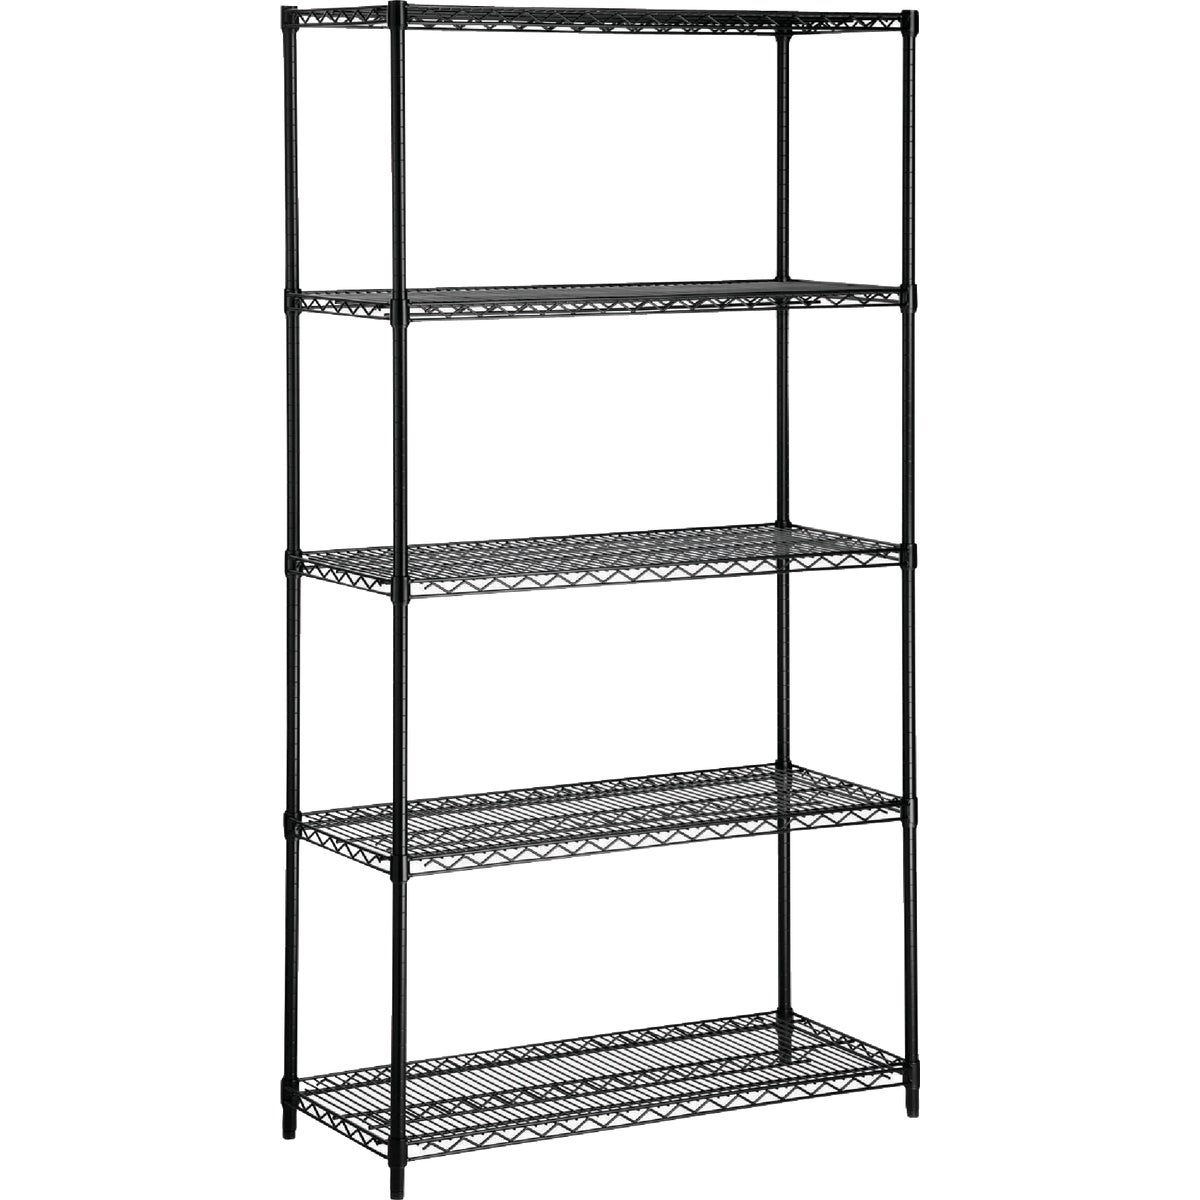 BLK 5 TIER SHELF - SHF-01442 by Honey Can Do